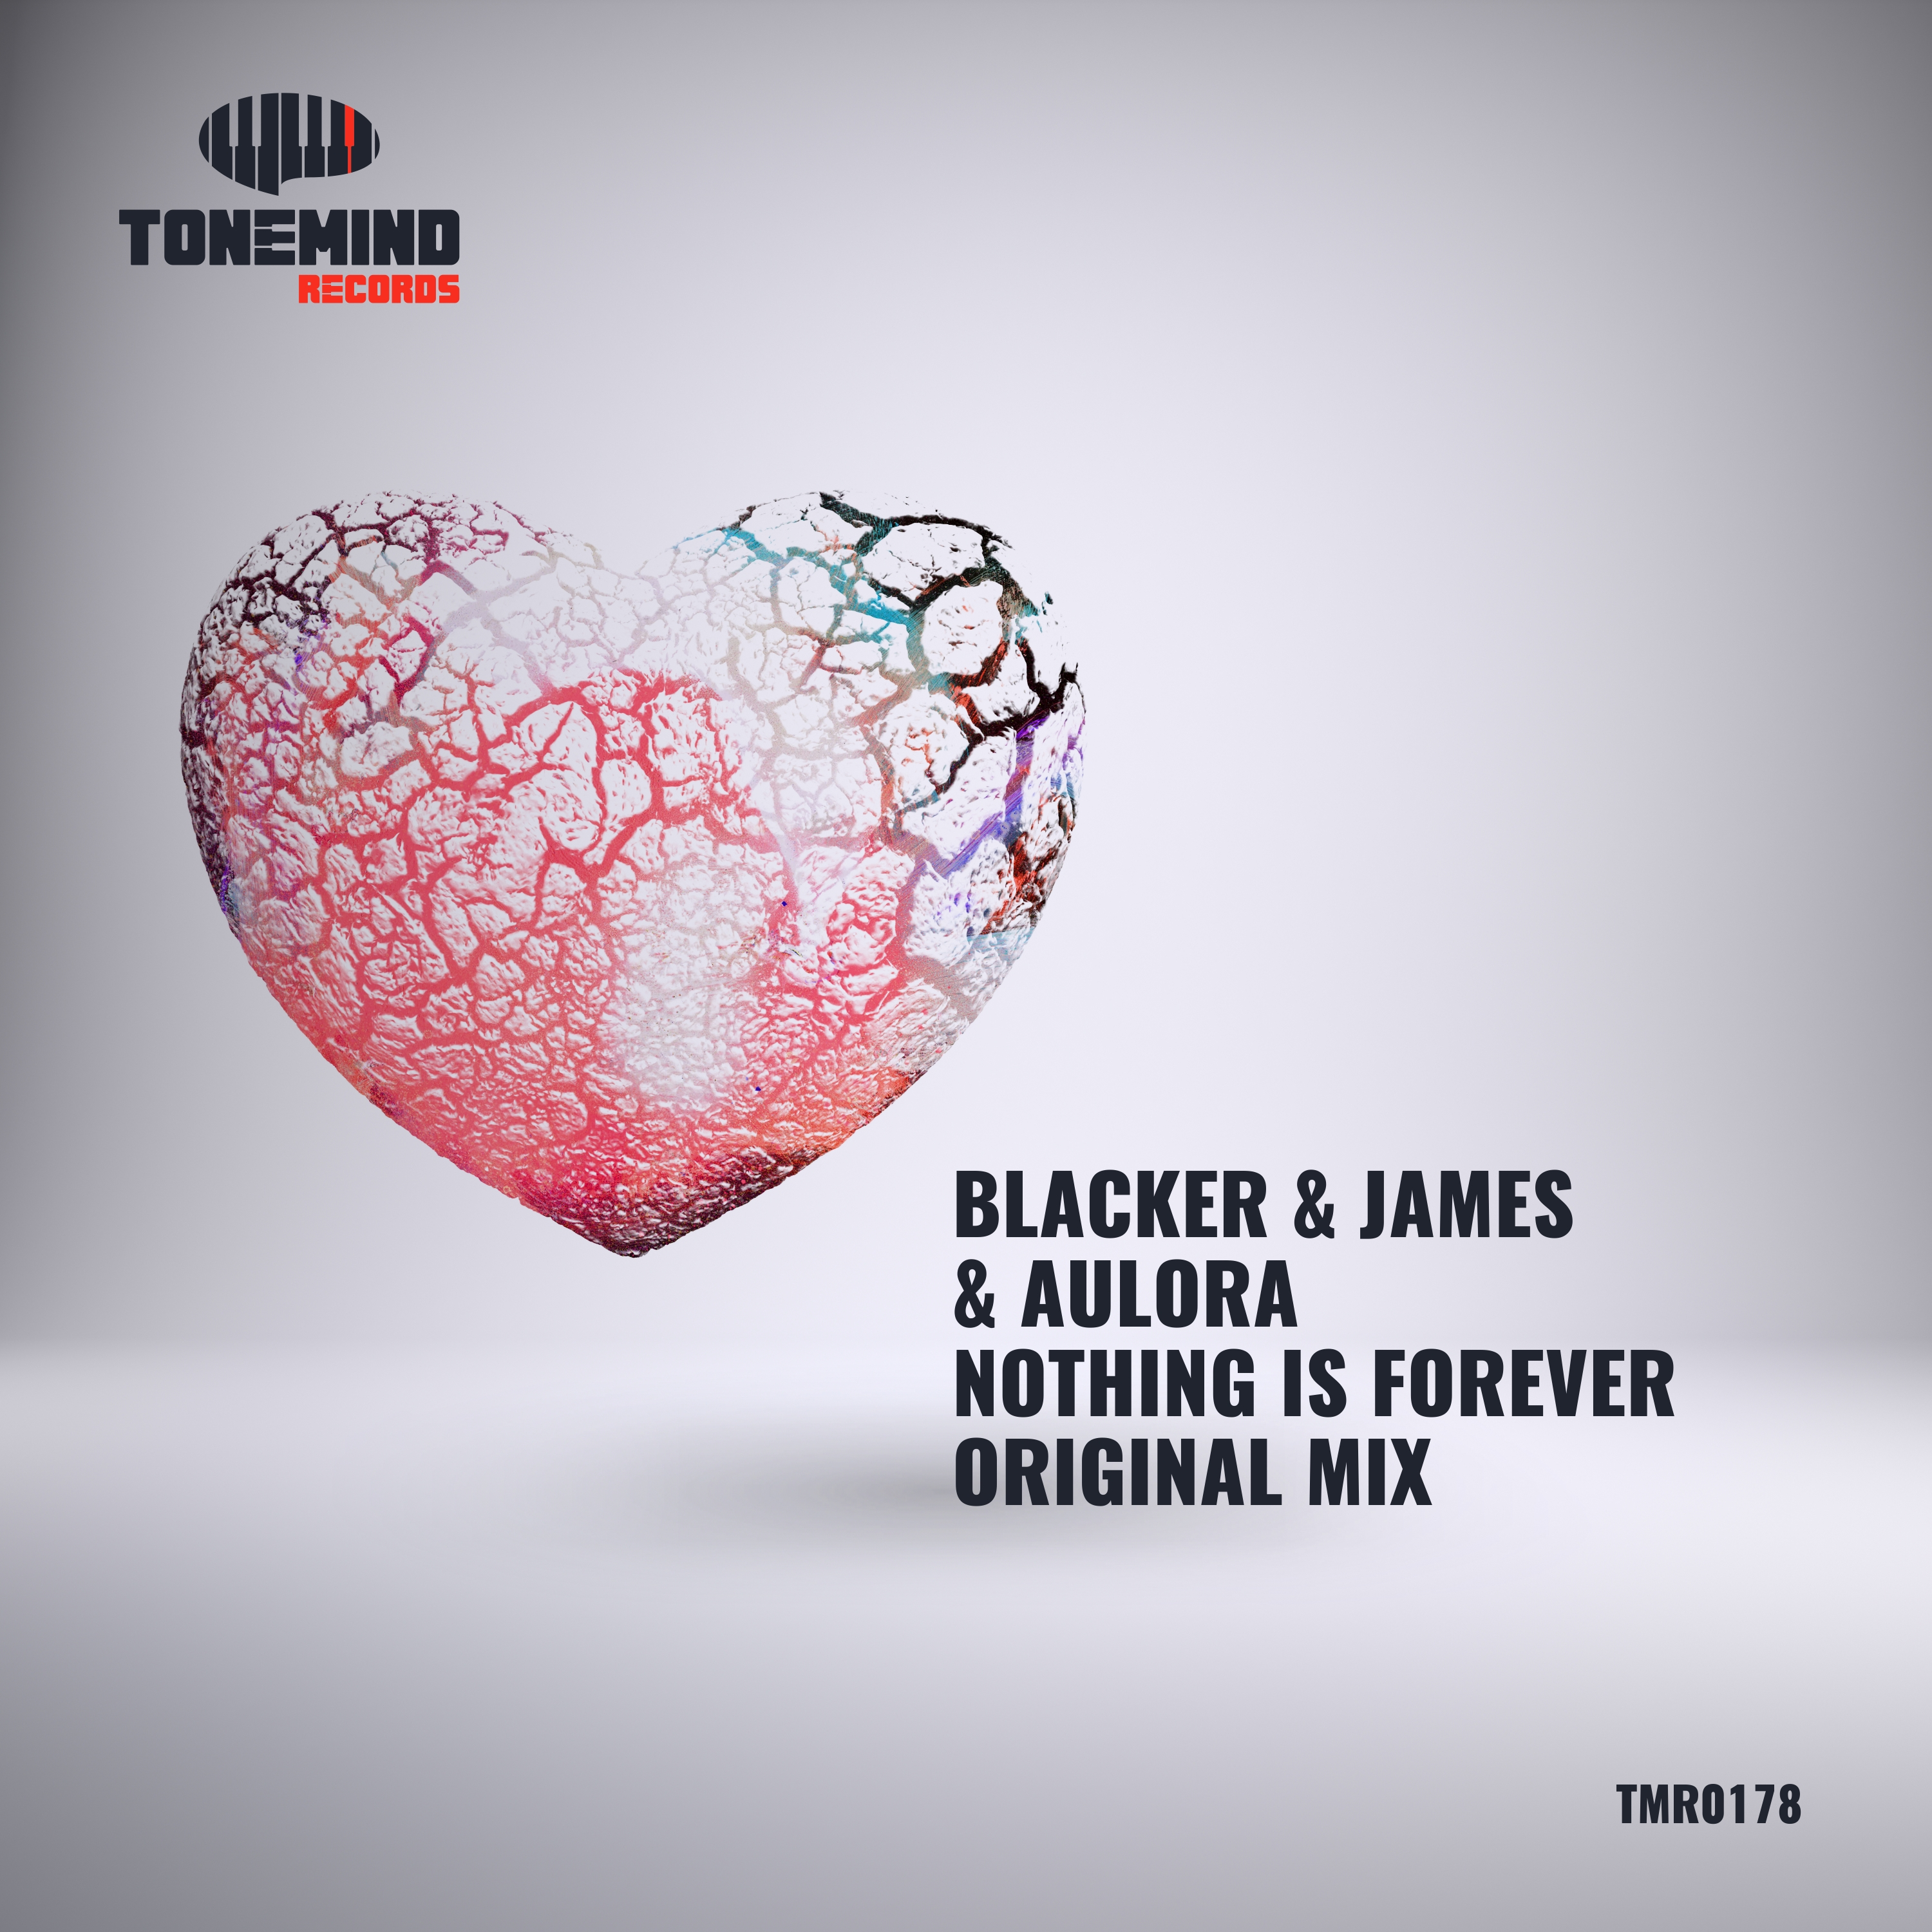 Blacker & James & Aulora - Nothing Is Forever (Radio mix)